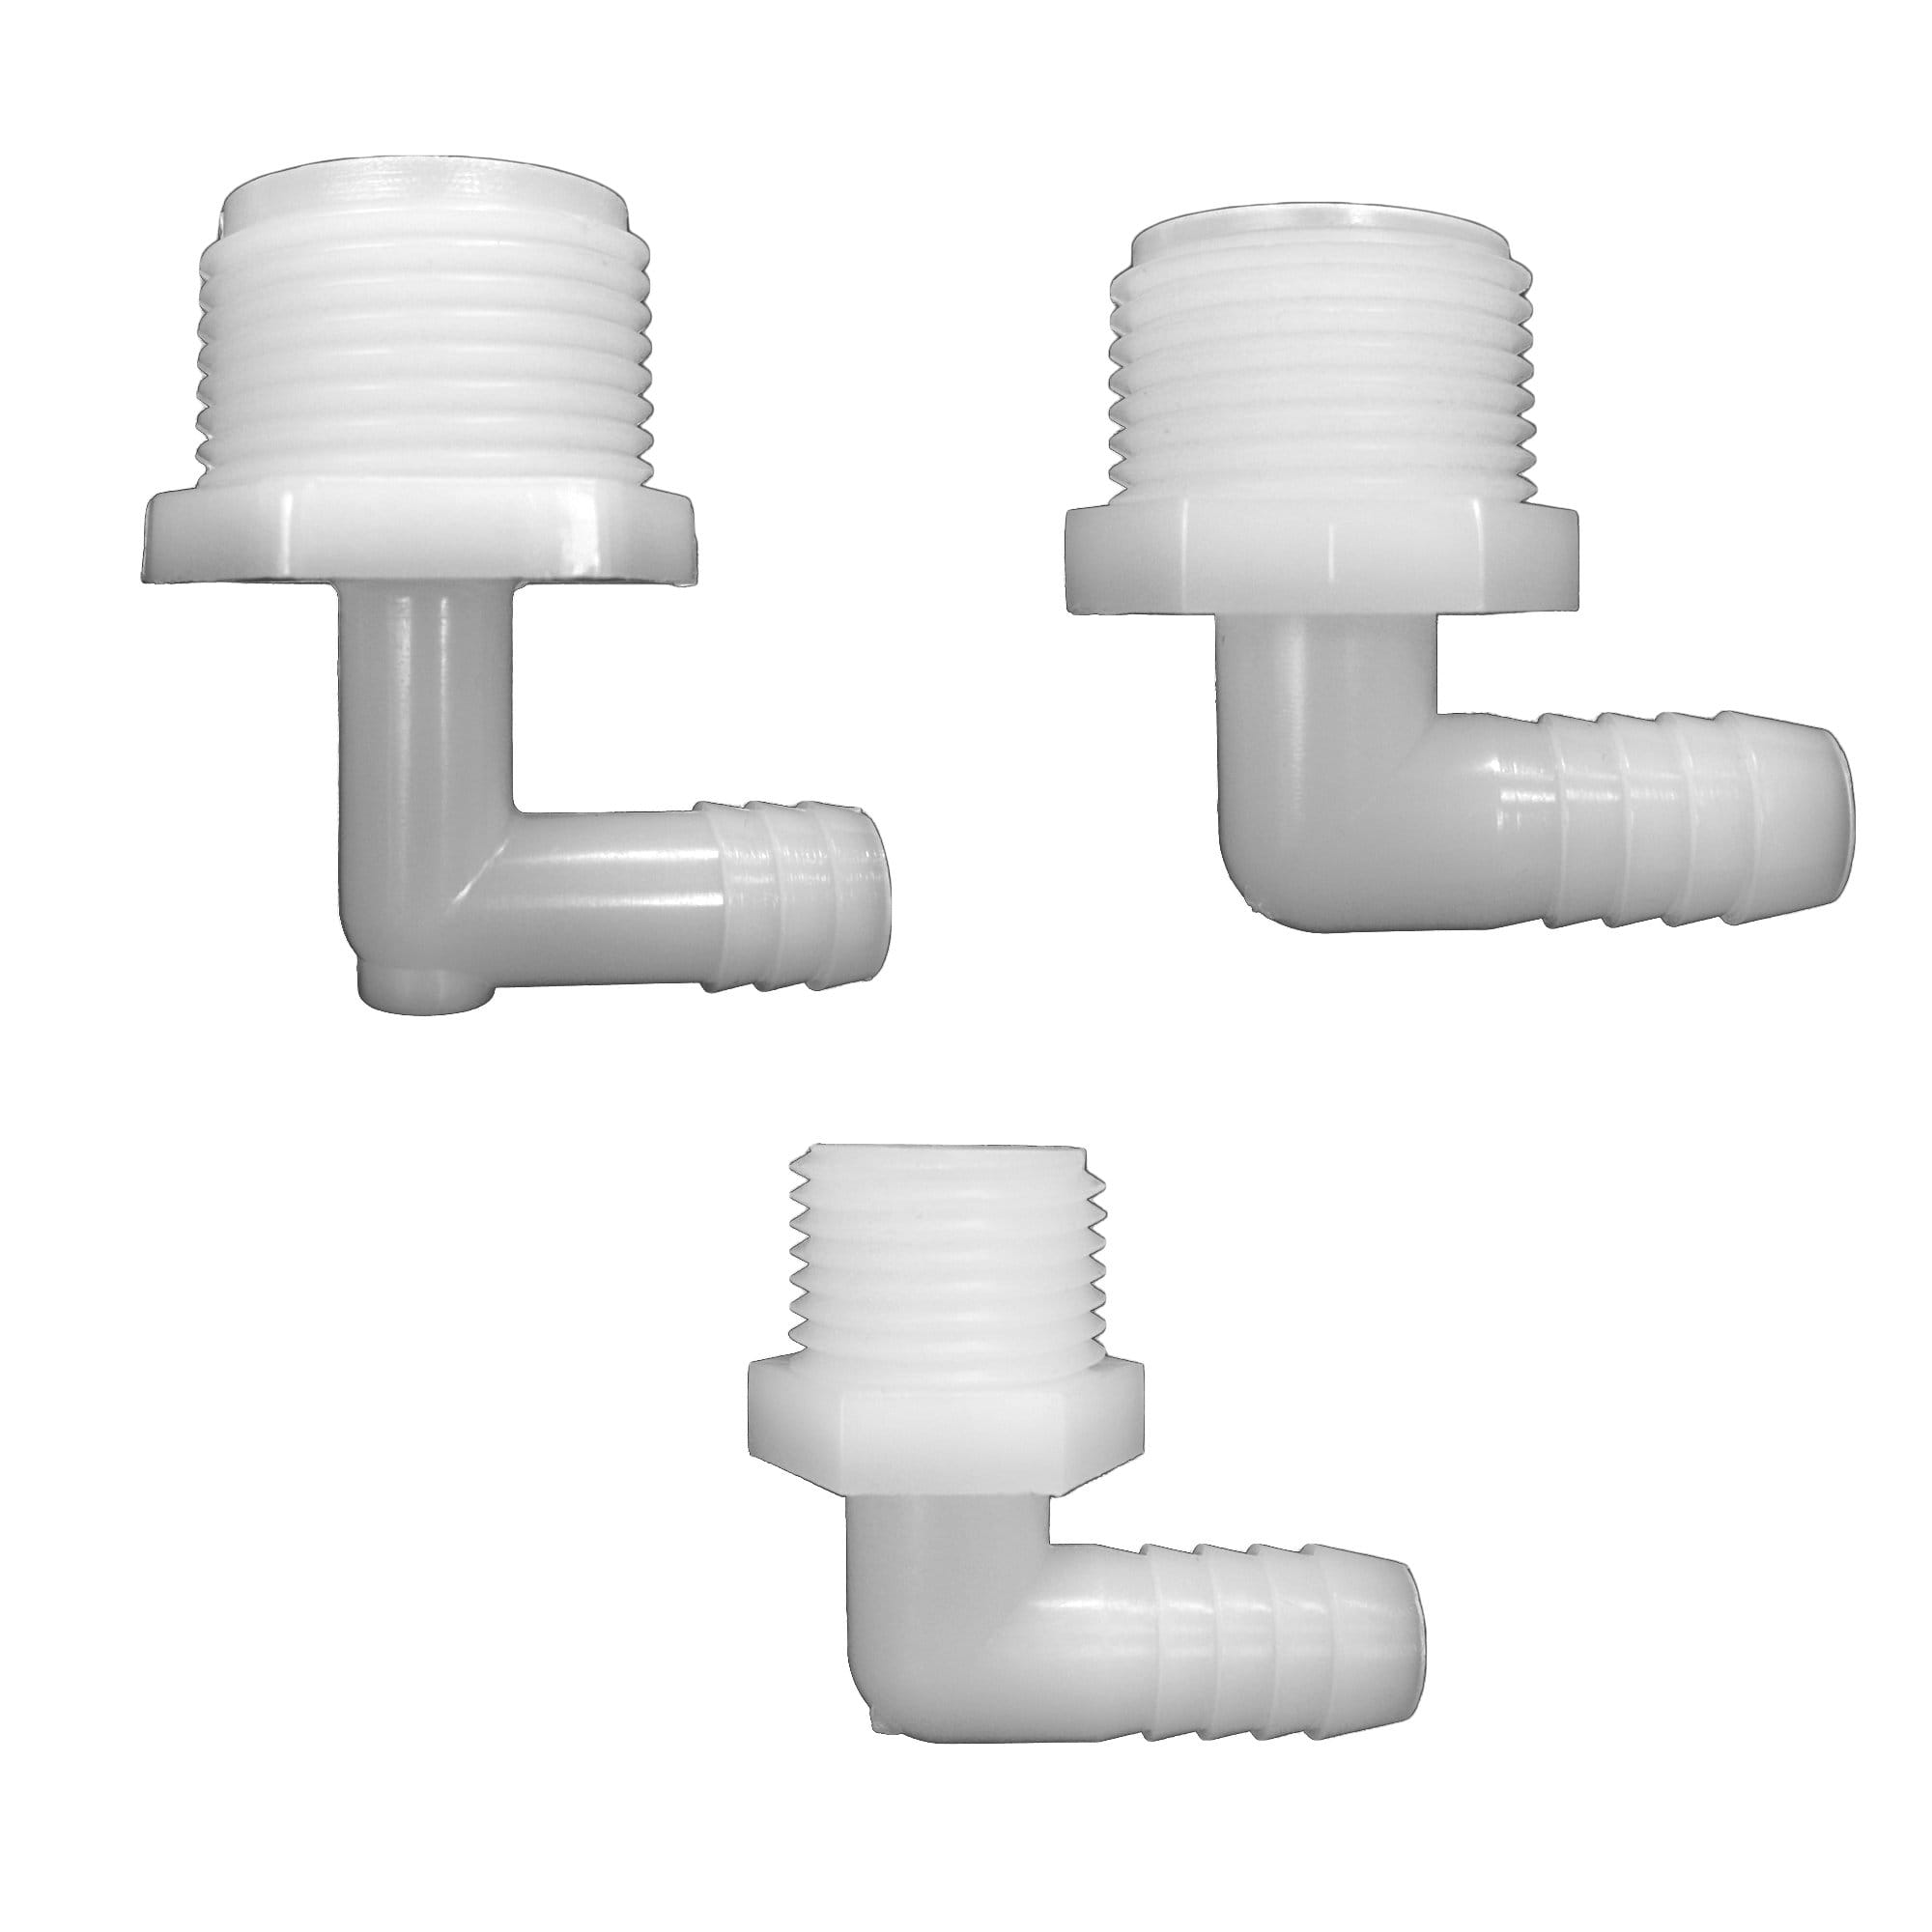 "NYLON 1/2"" Hose Tail Threaded TANK Connectors - Window Cleaning Warehouse Ltd"